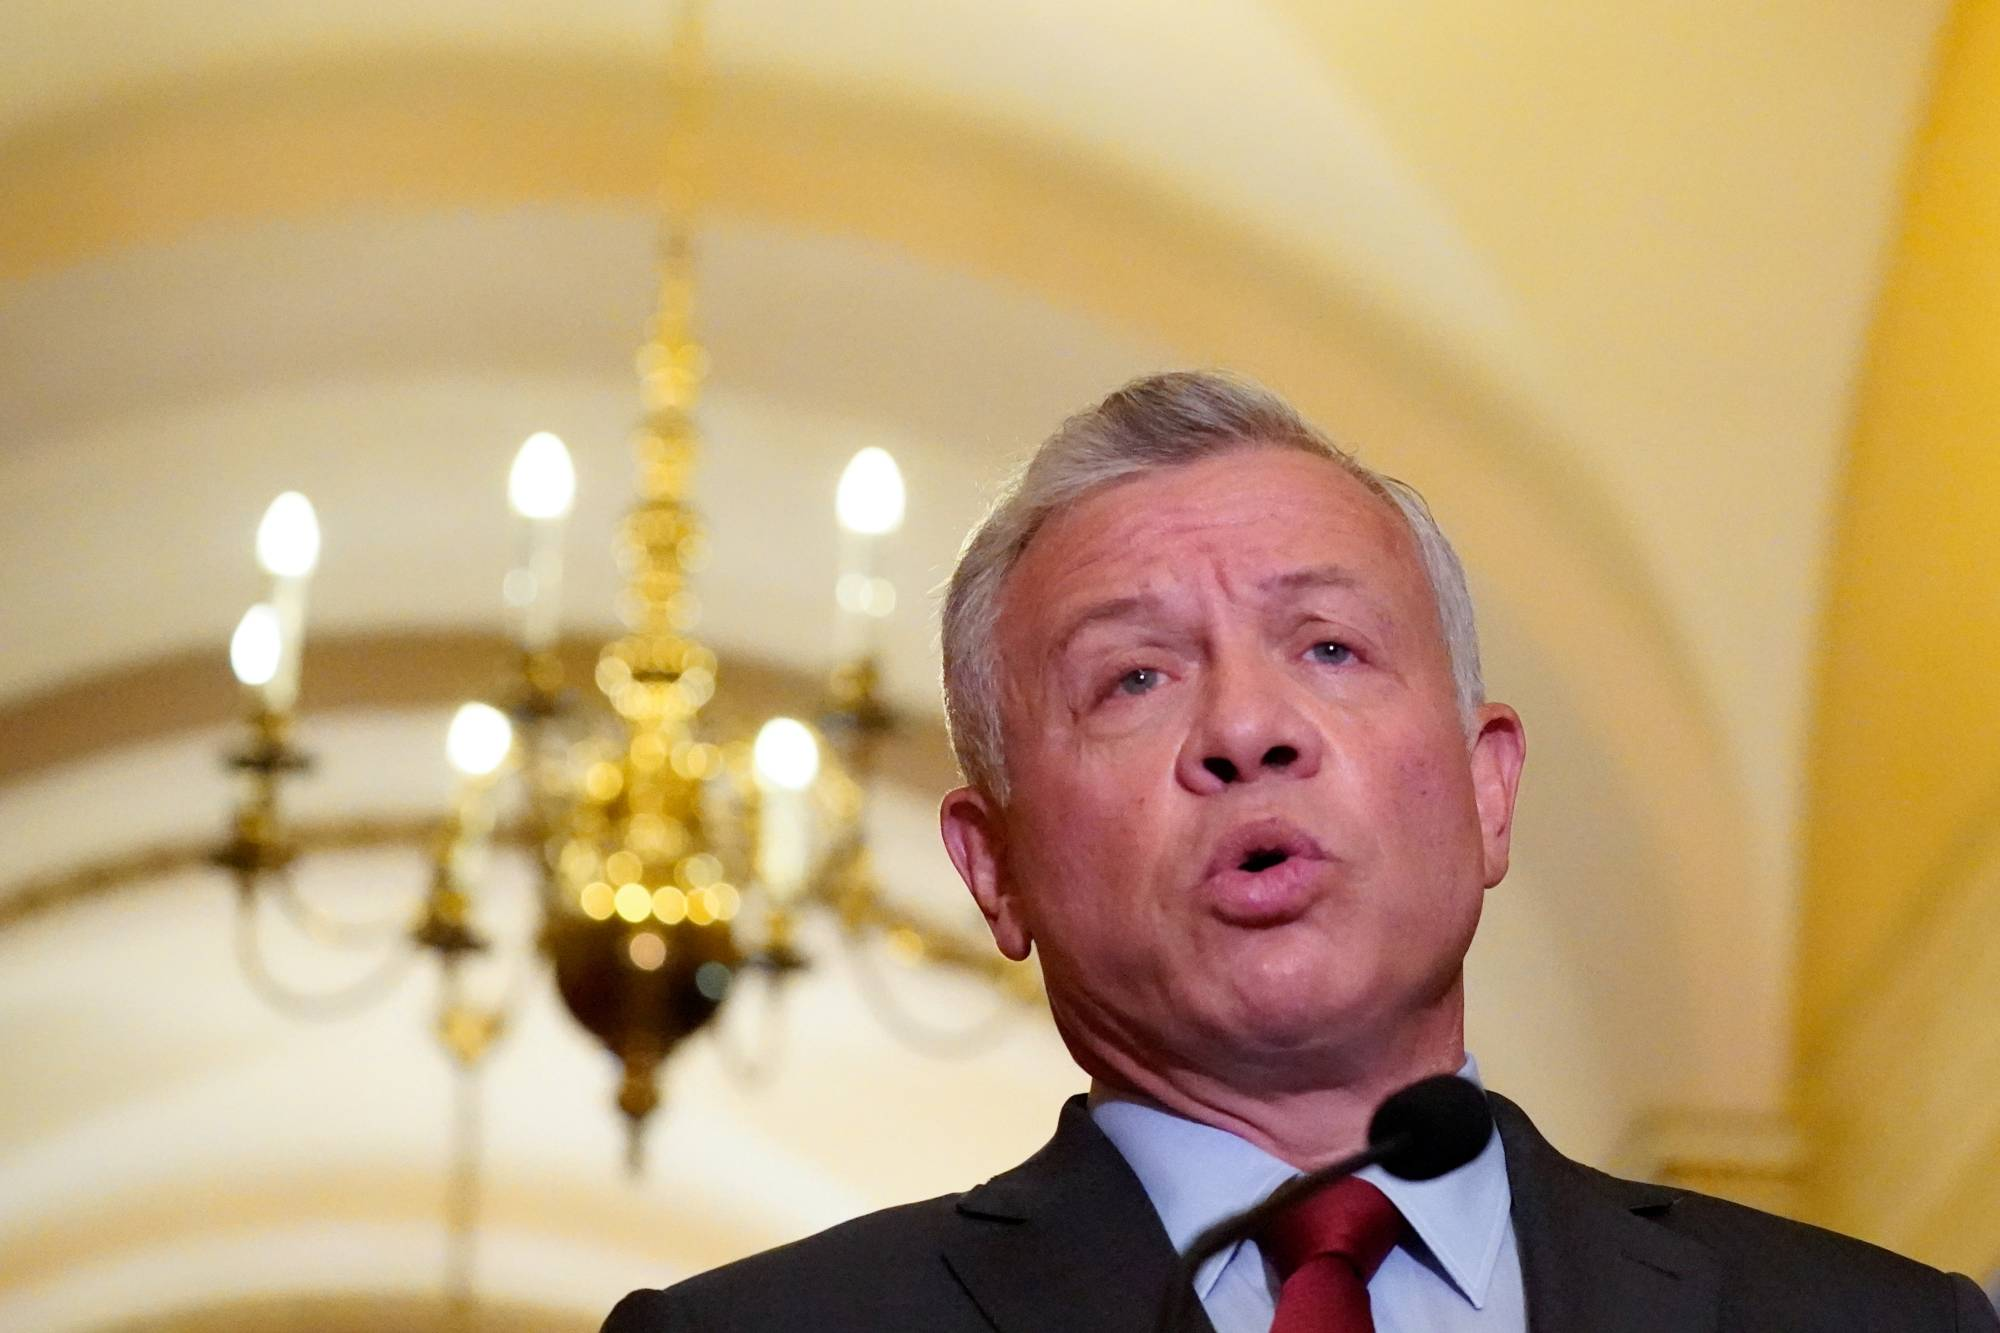 The Pandora Papers expose how Jordan's King Abdullah II created a network of offshore companies and tax havens to amass a $100 million property empire from Malibu, California, to Washington and London. | REUTERS